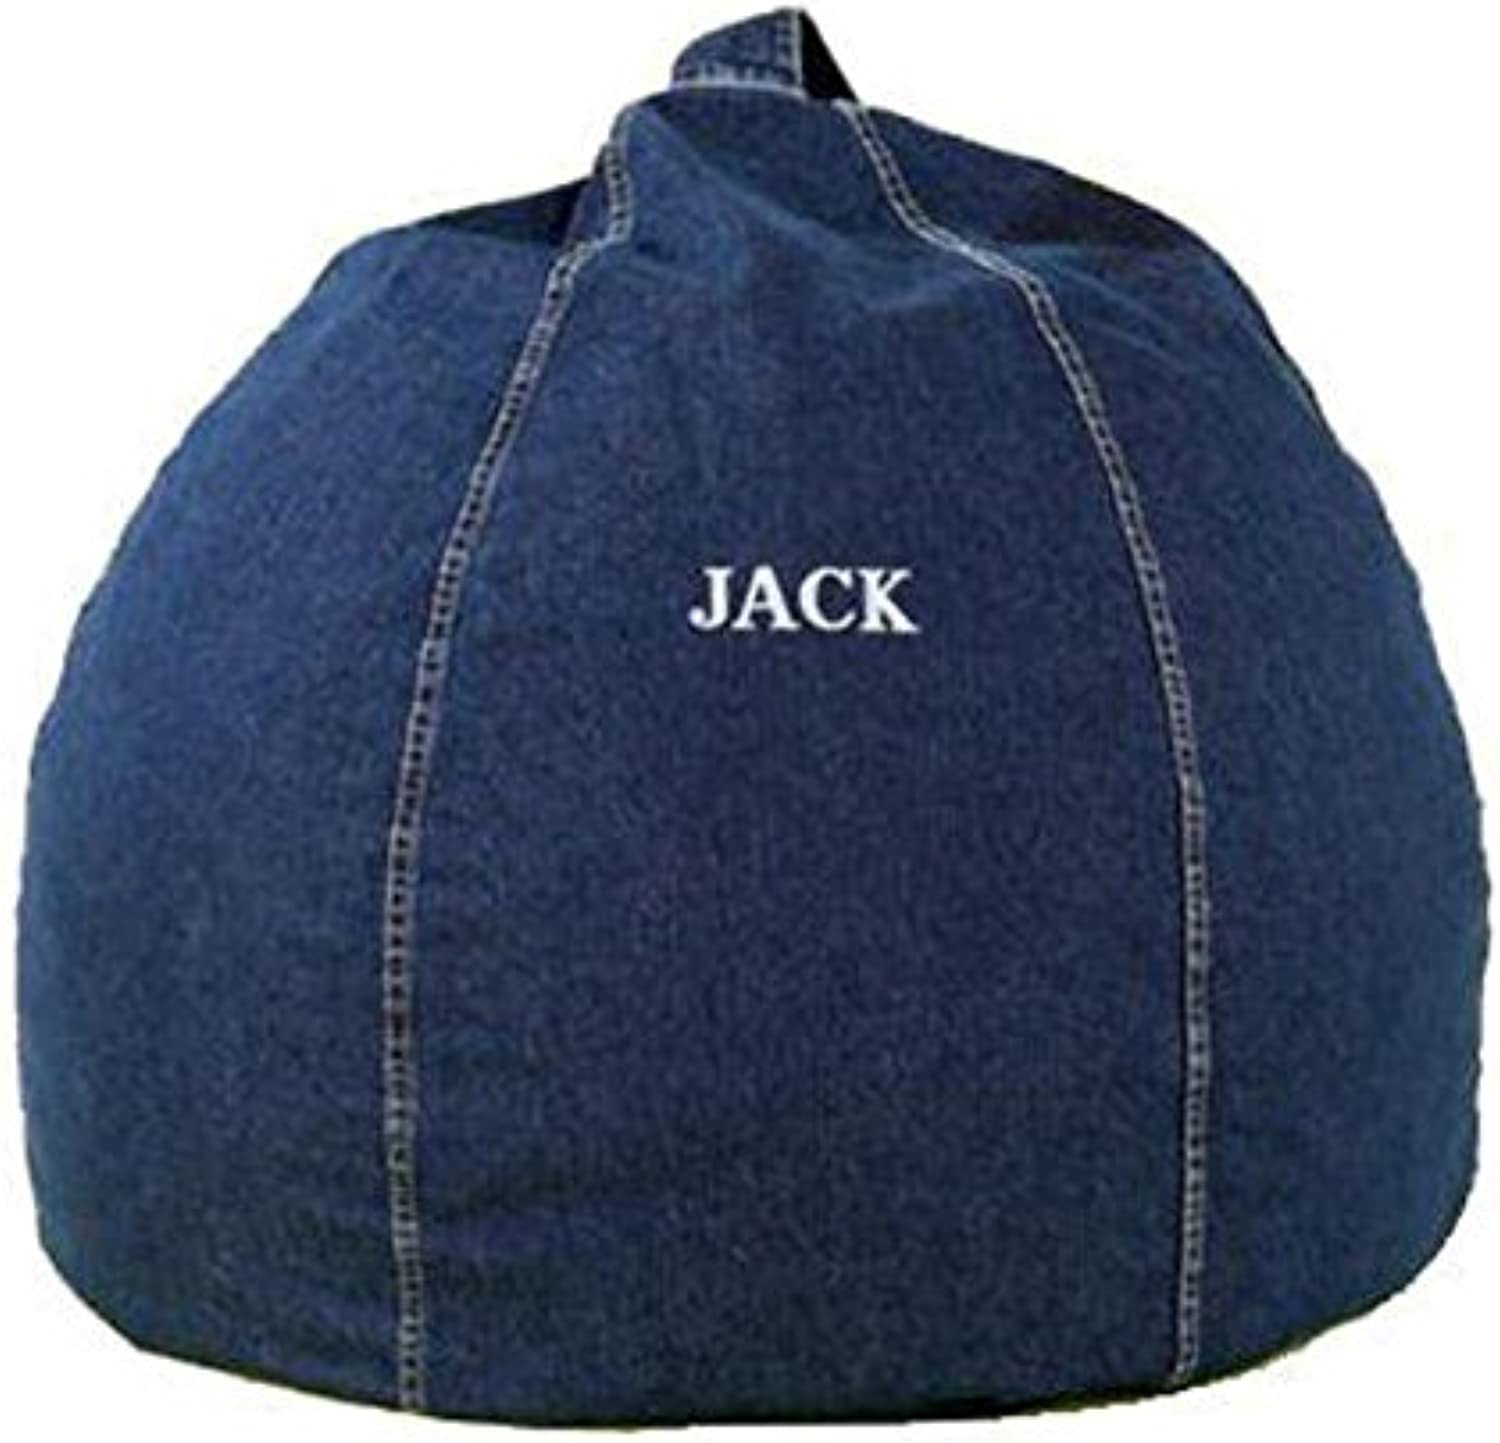 Mybeanbag Chair Kids Round, Denim, Indigo